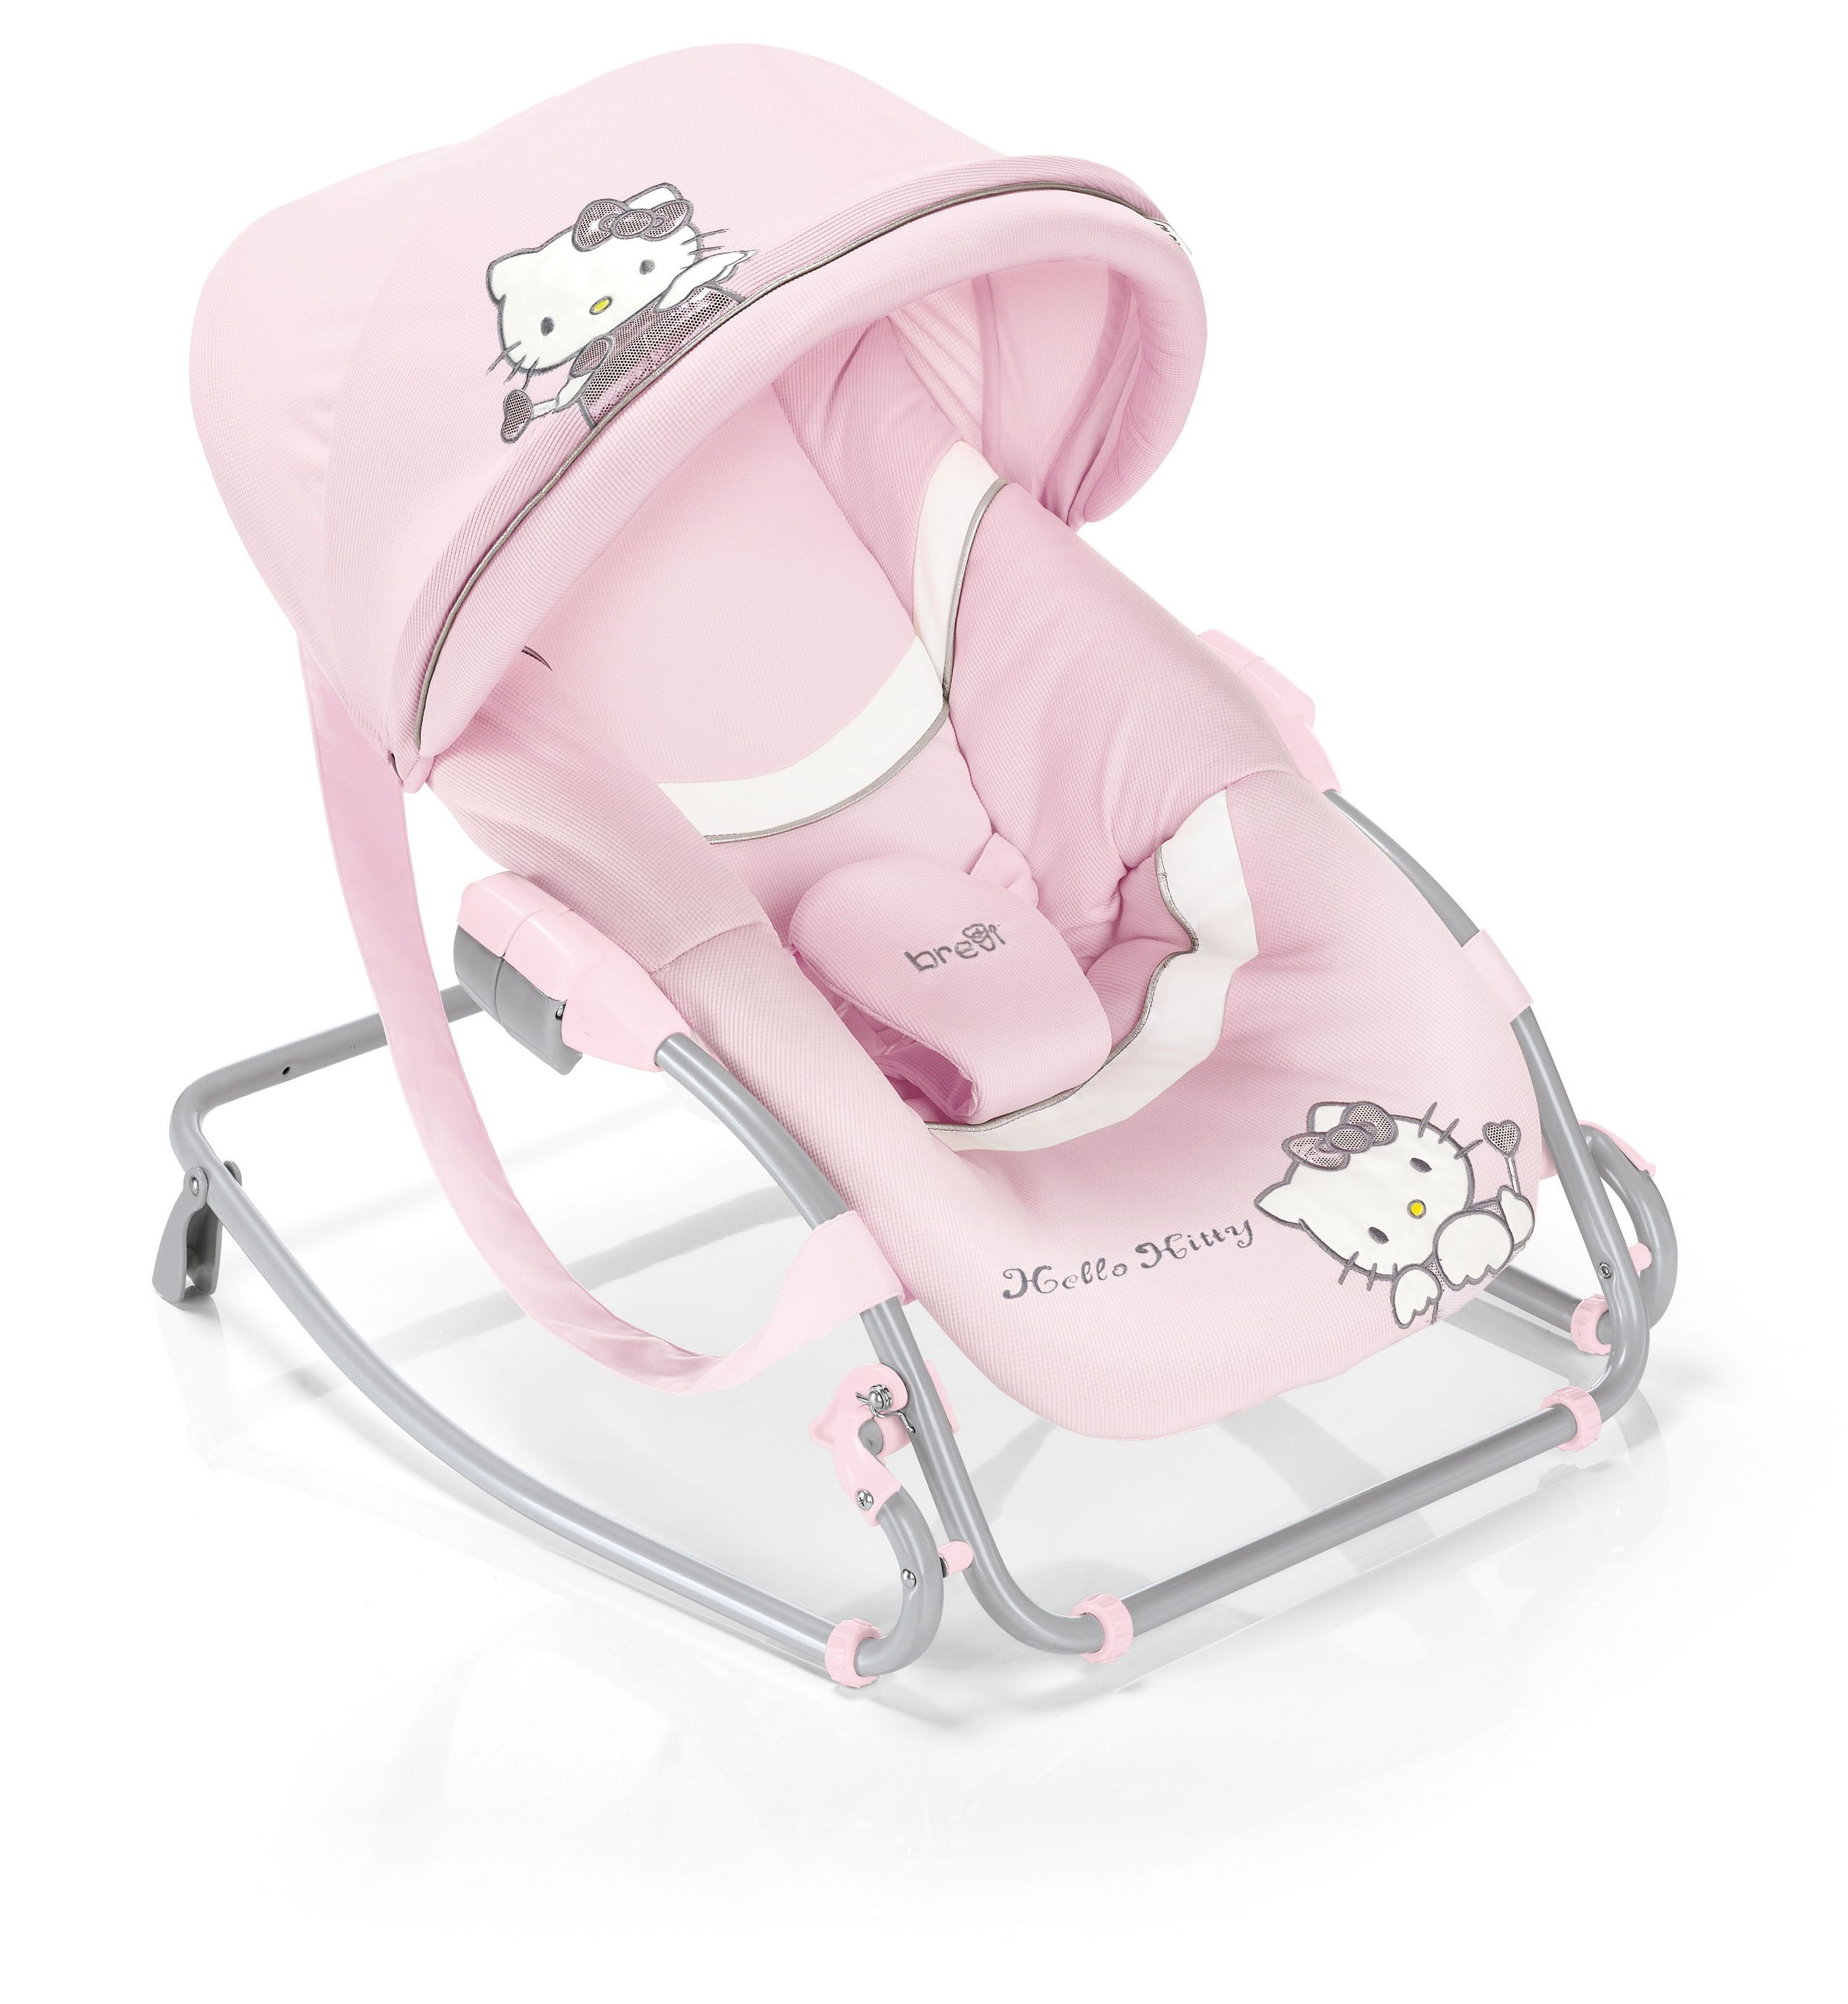 Brevi Hello Kitty Sdraietta Baby Rocker Hello Kitty Baby